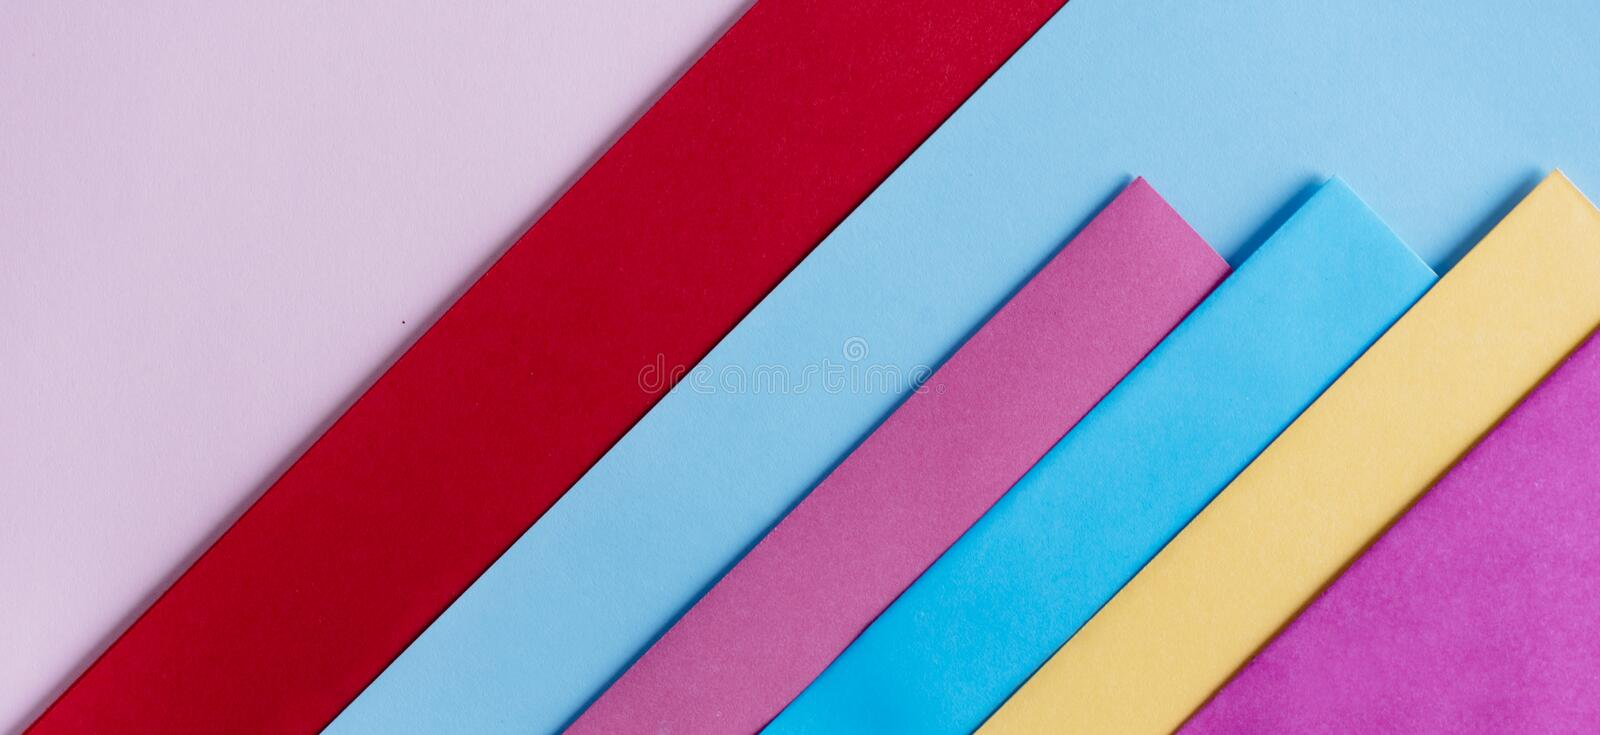 Trendy pastel colors in geometry shape flat lay. Colorful rainbow paper creative linear background. Abstract minimal vivid art design stock photography